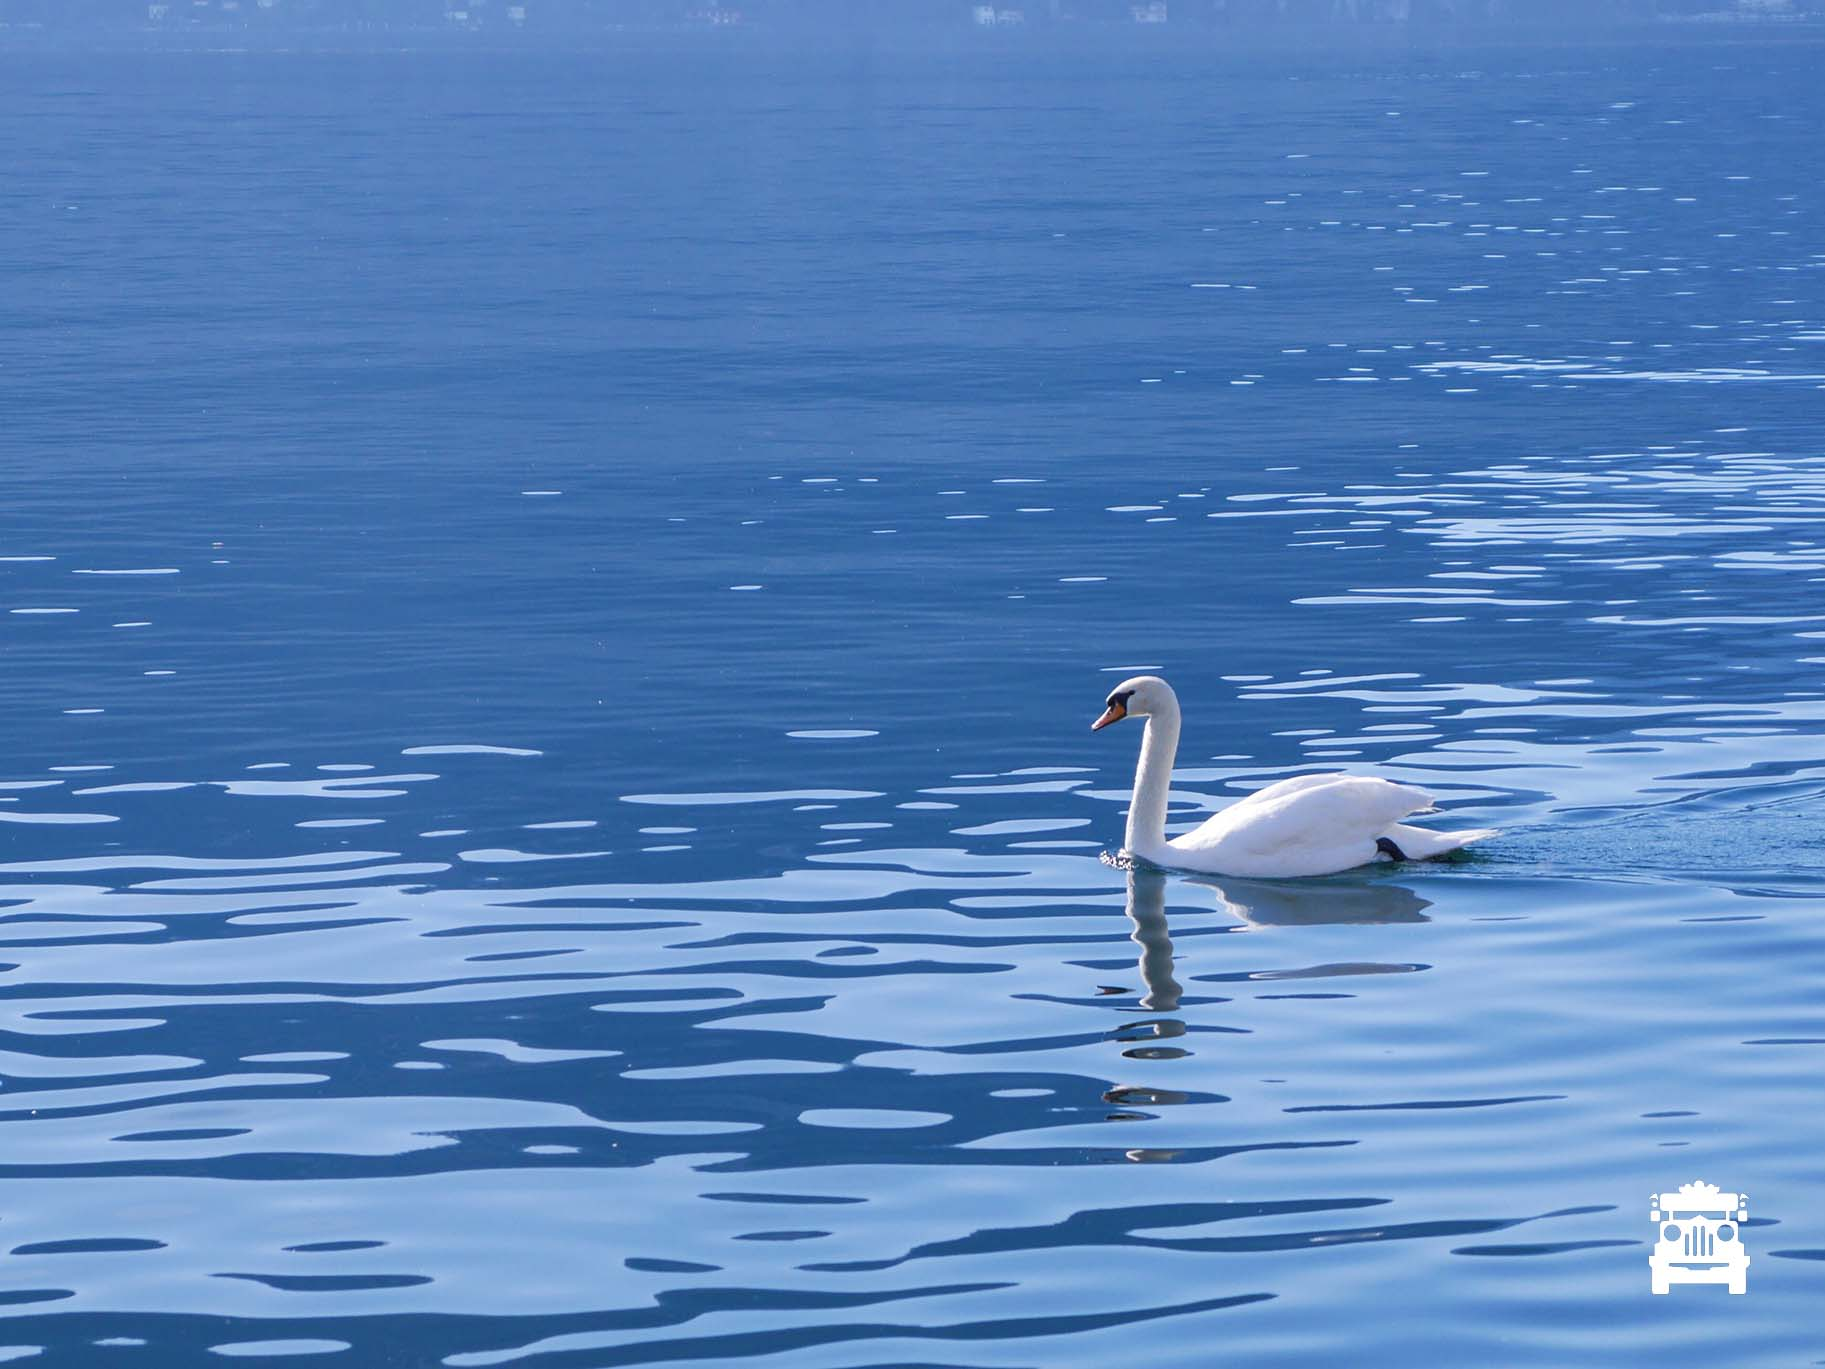 The swan pic